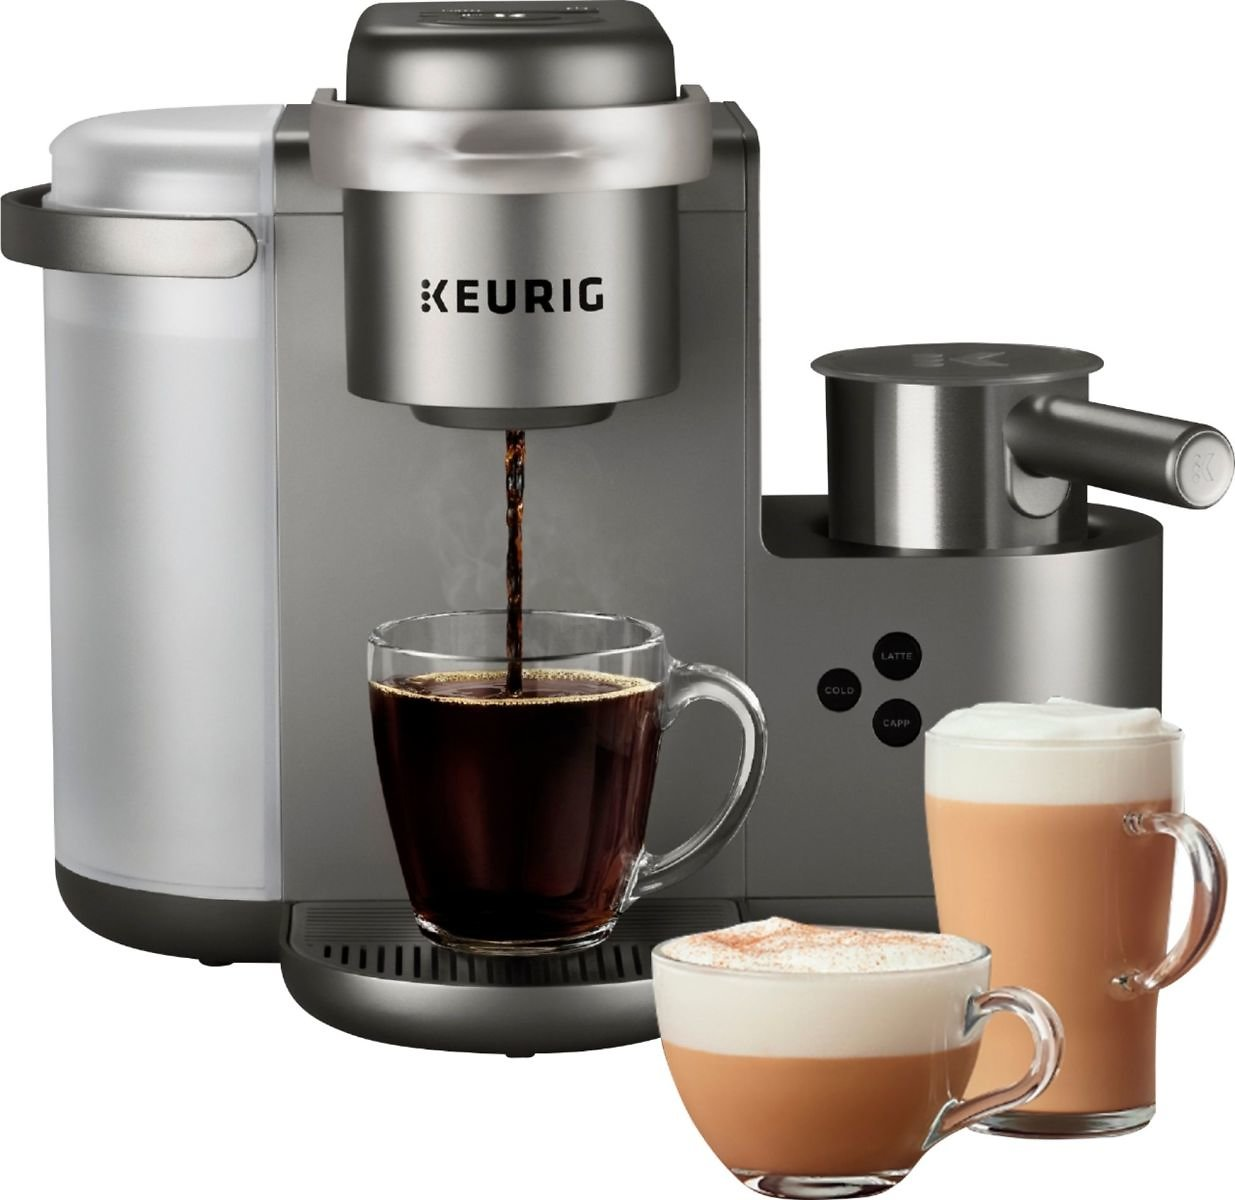 14% OFF | Keurig K-Cafe Special Edition Single Serve K-Cup Pod Coffee Maker with Milk Frother Nickel 5000200558